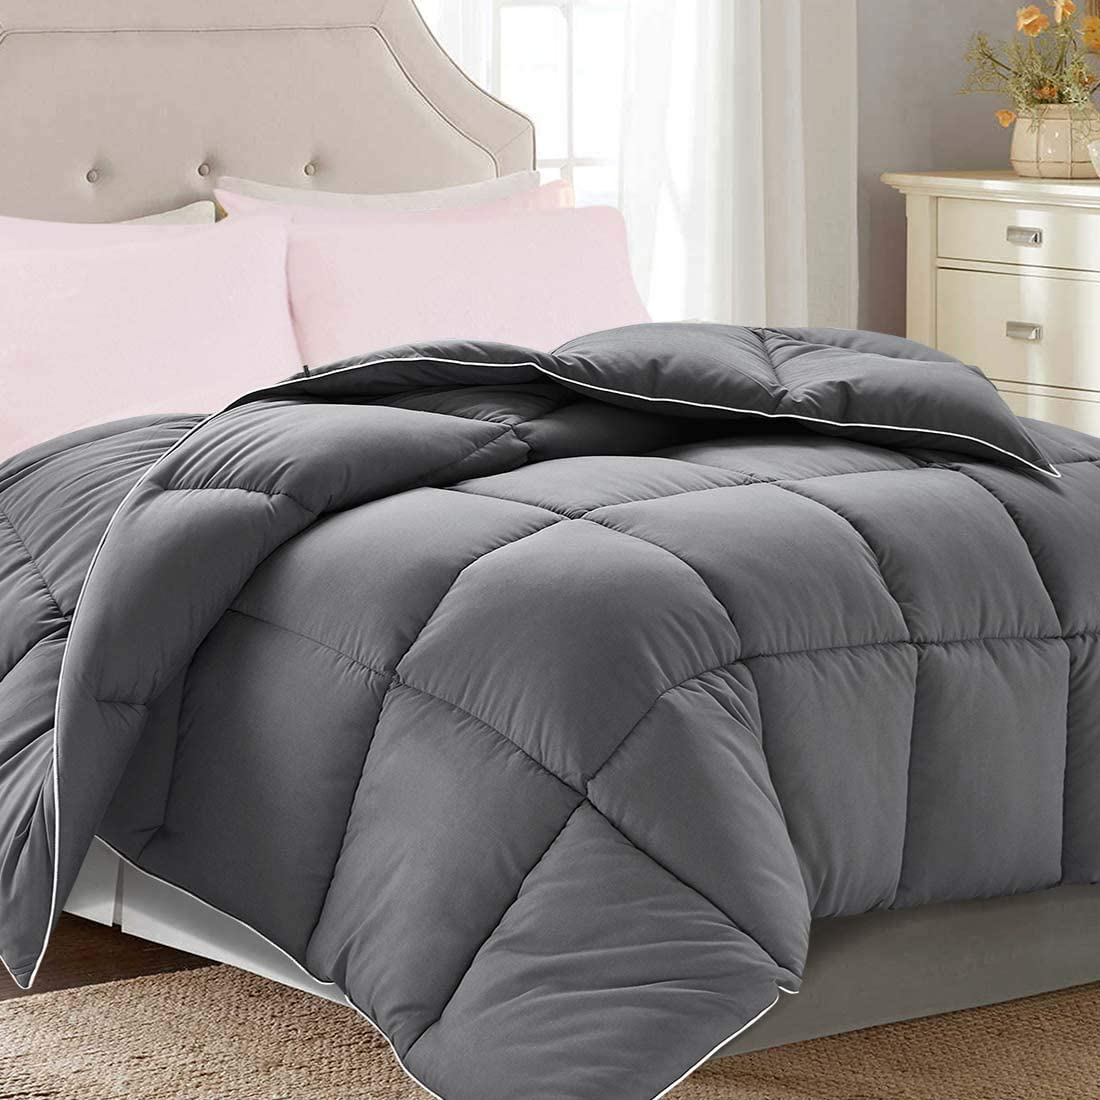 "Brermer Soft Queen Goose Down Alternative Comforter, All Seasons Puffy Warm Duvet Insert with 8 Corner Tabs, Luxury Reversible Hotel Collection, 88""x 88"", Grey"